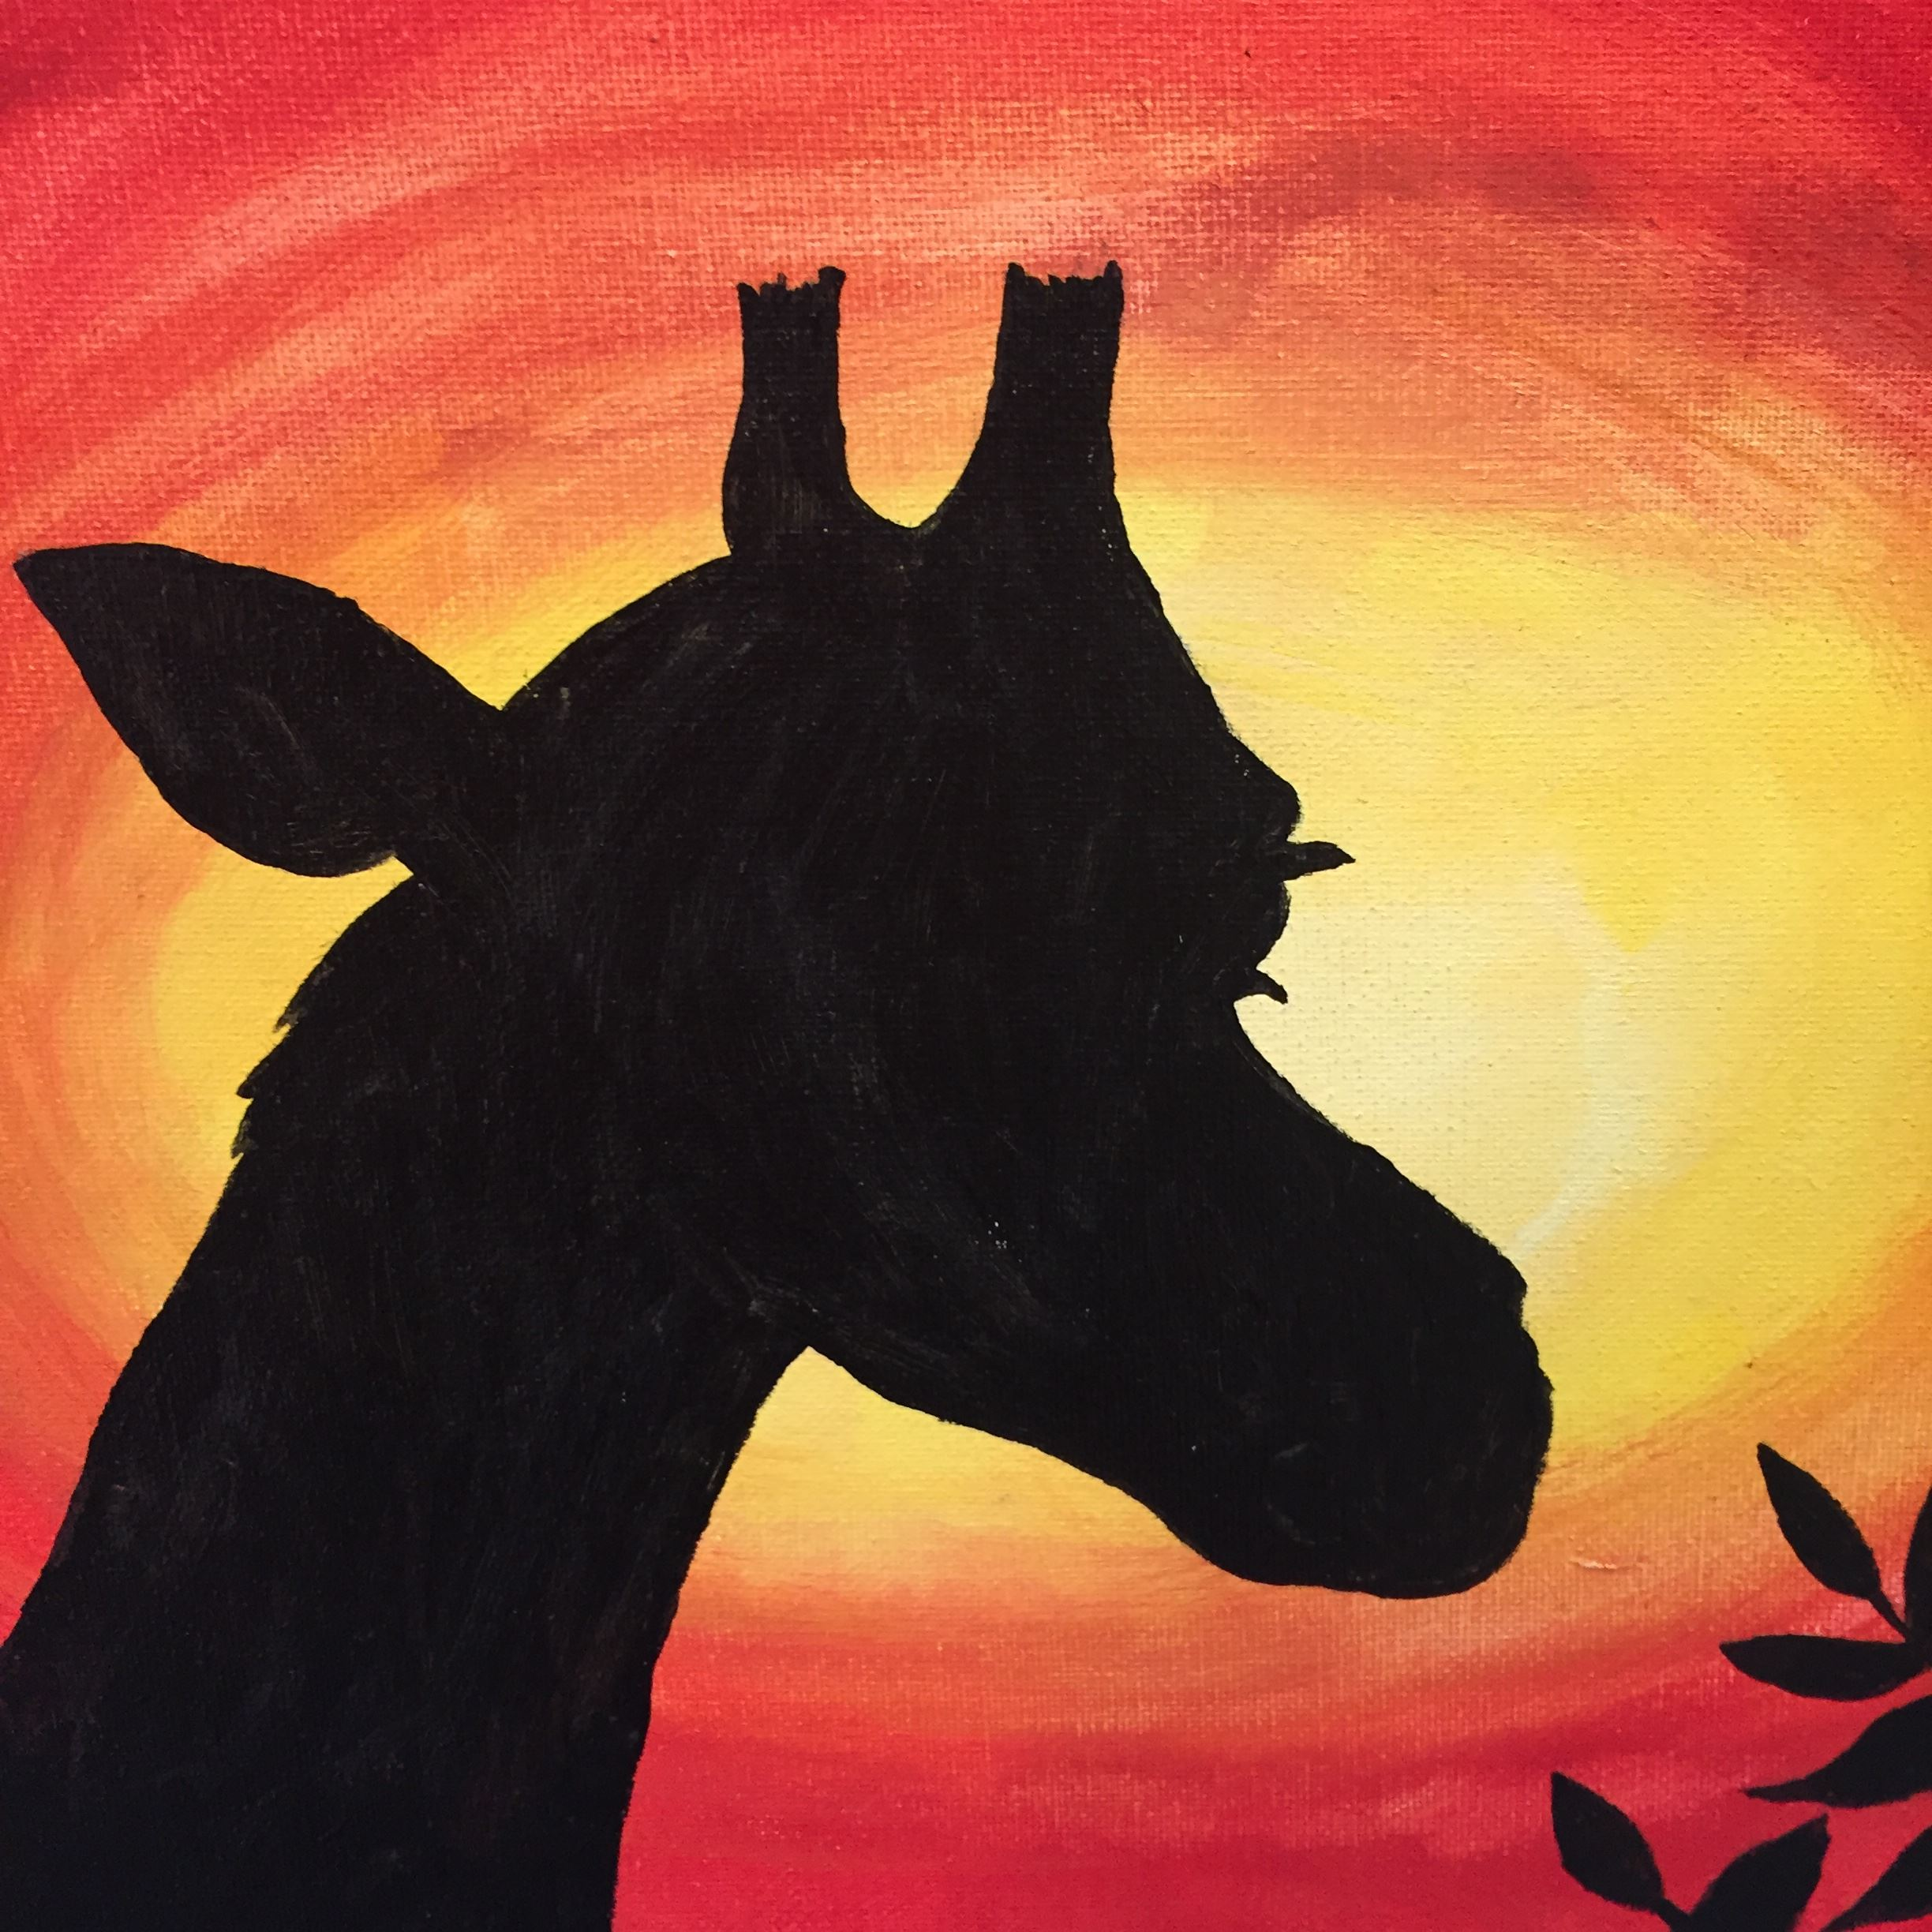 Painting of black giraffe silhouette in front of sunset